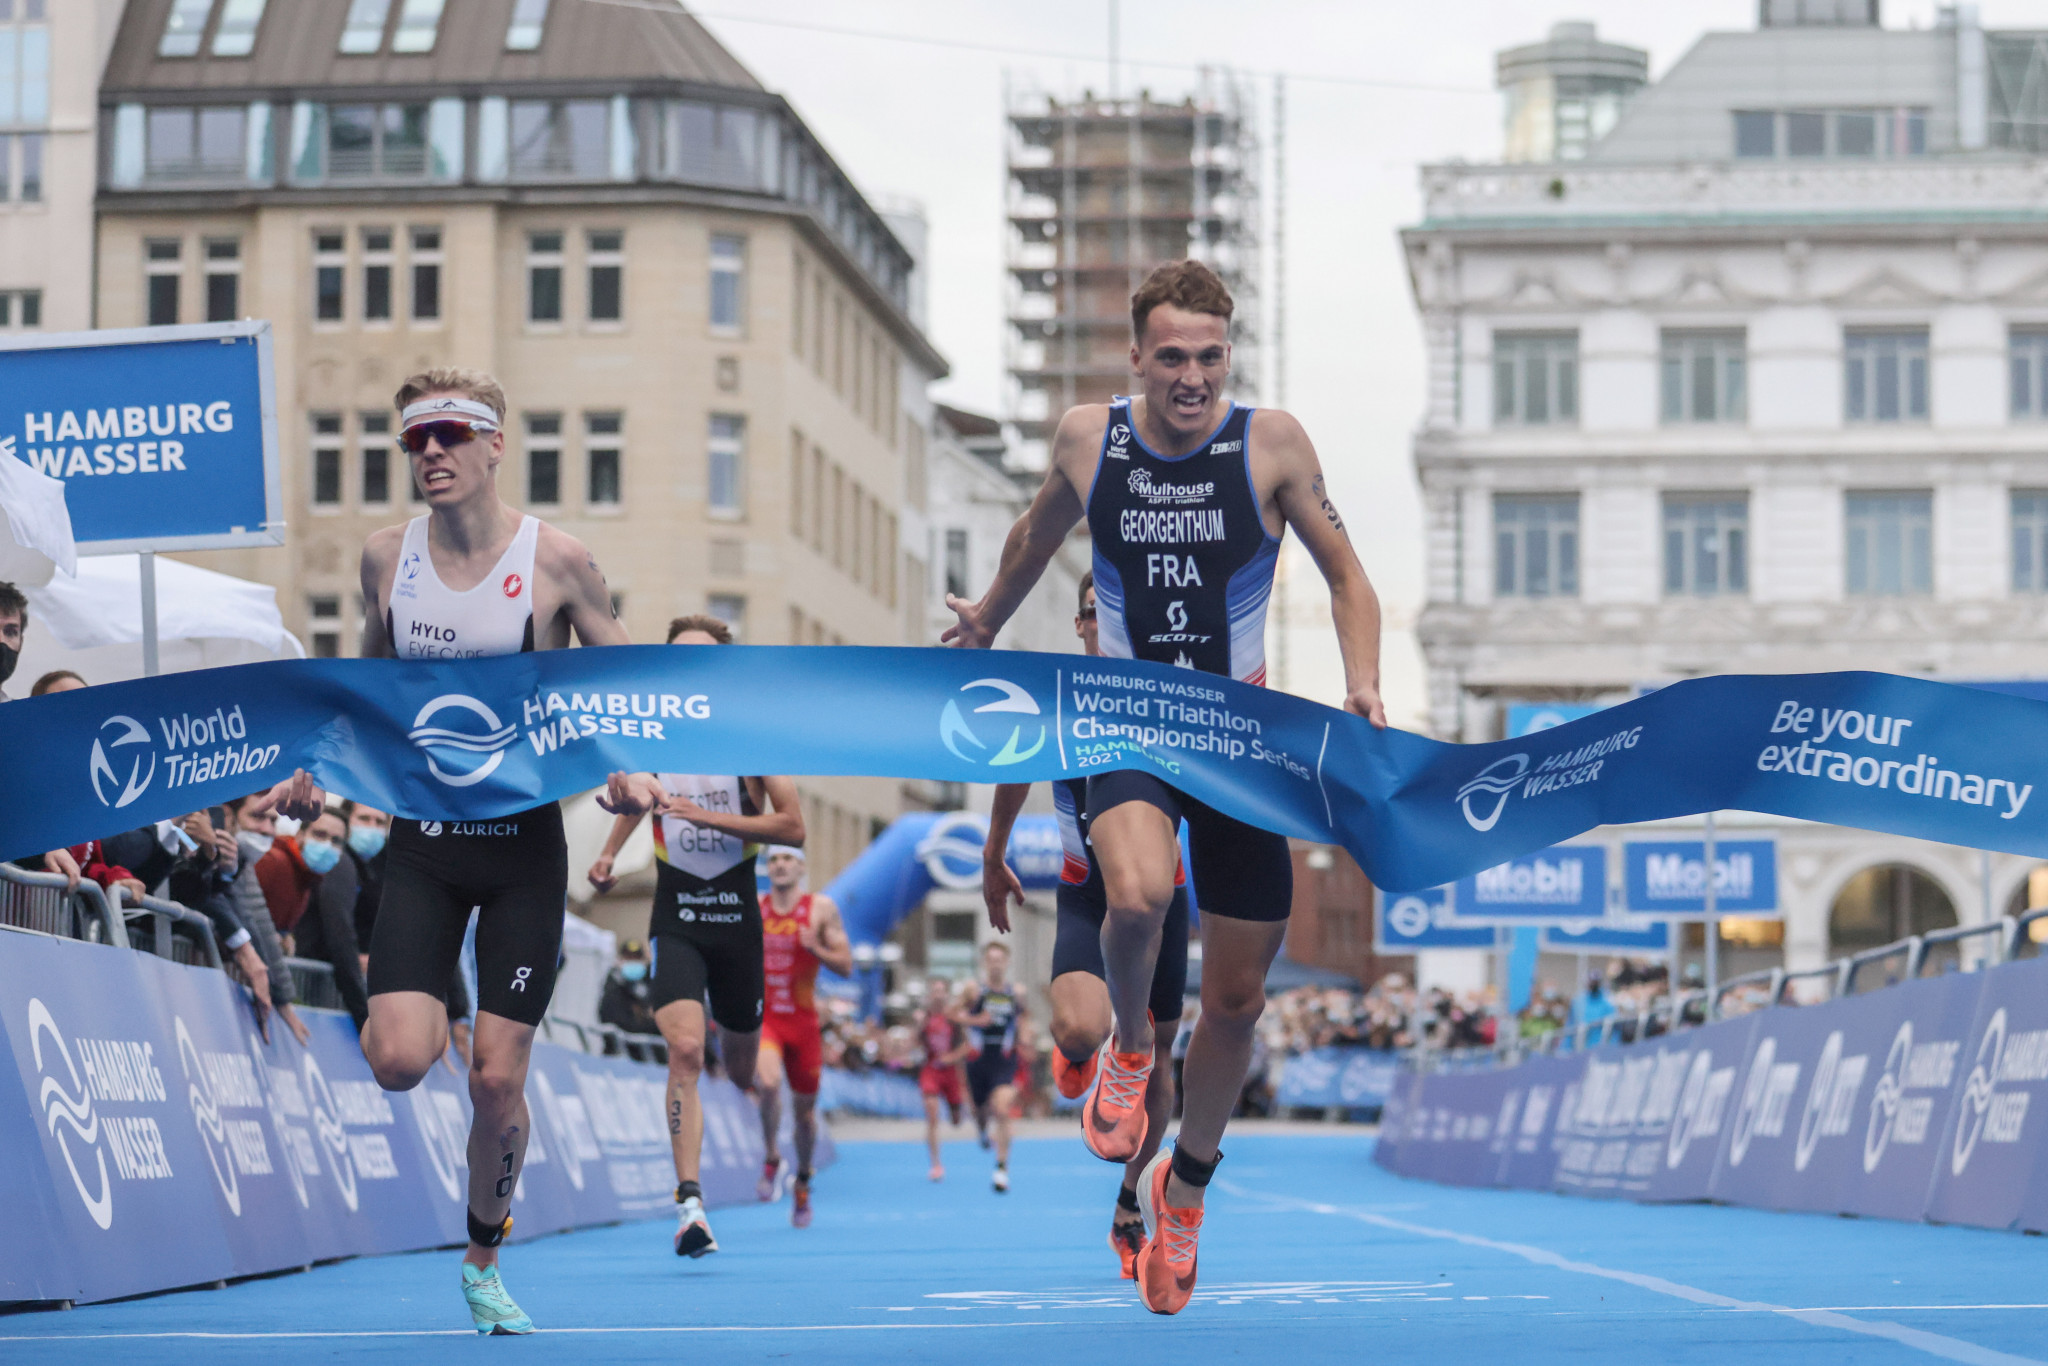 Hellwig wins sprint finish in World Triathlon Series thriller as first six separated by six seconds